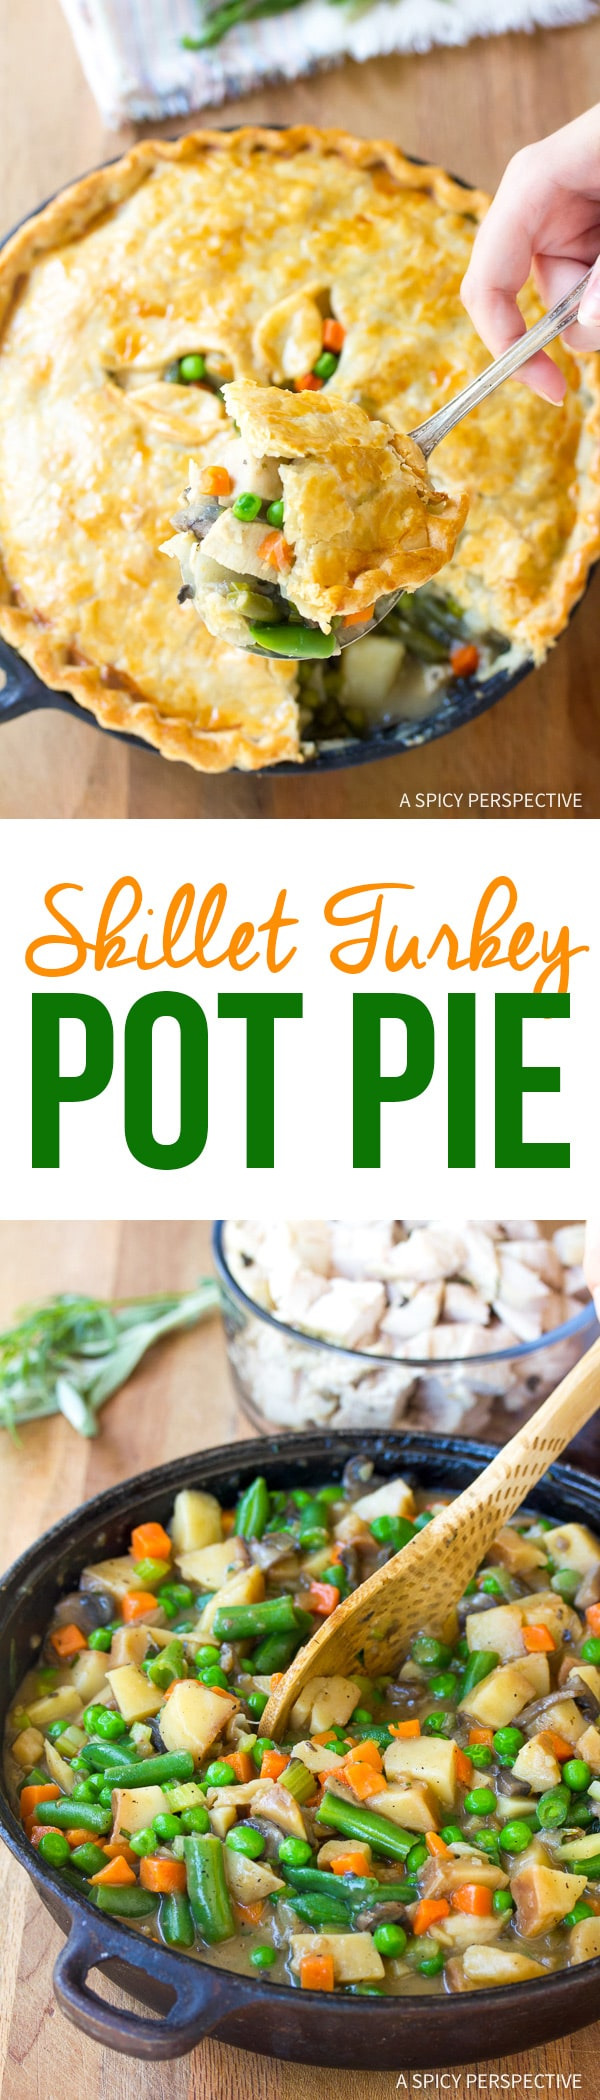 Skillet Turkey Pot Pie Recipe - Use up your holiday leftovers!